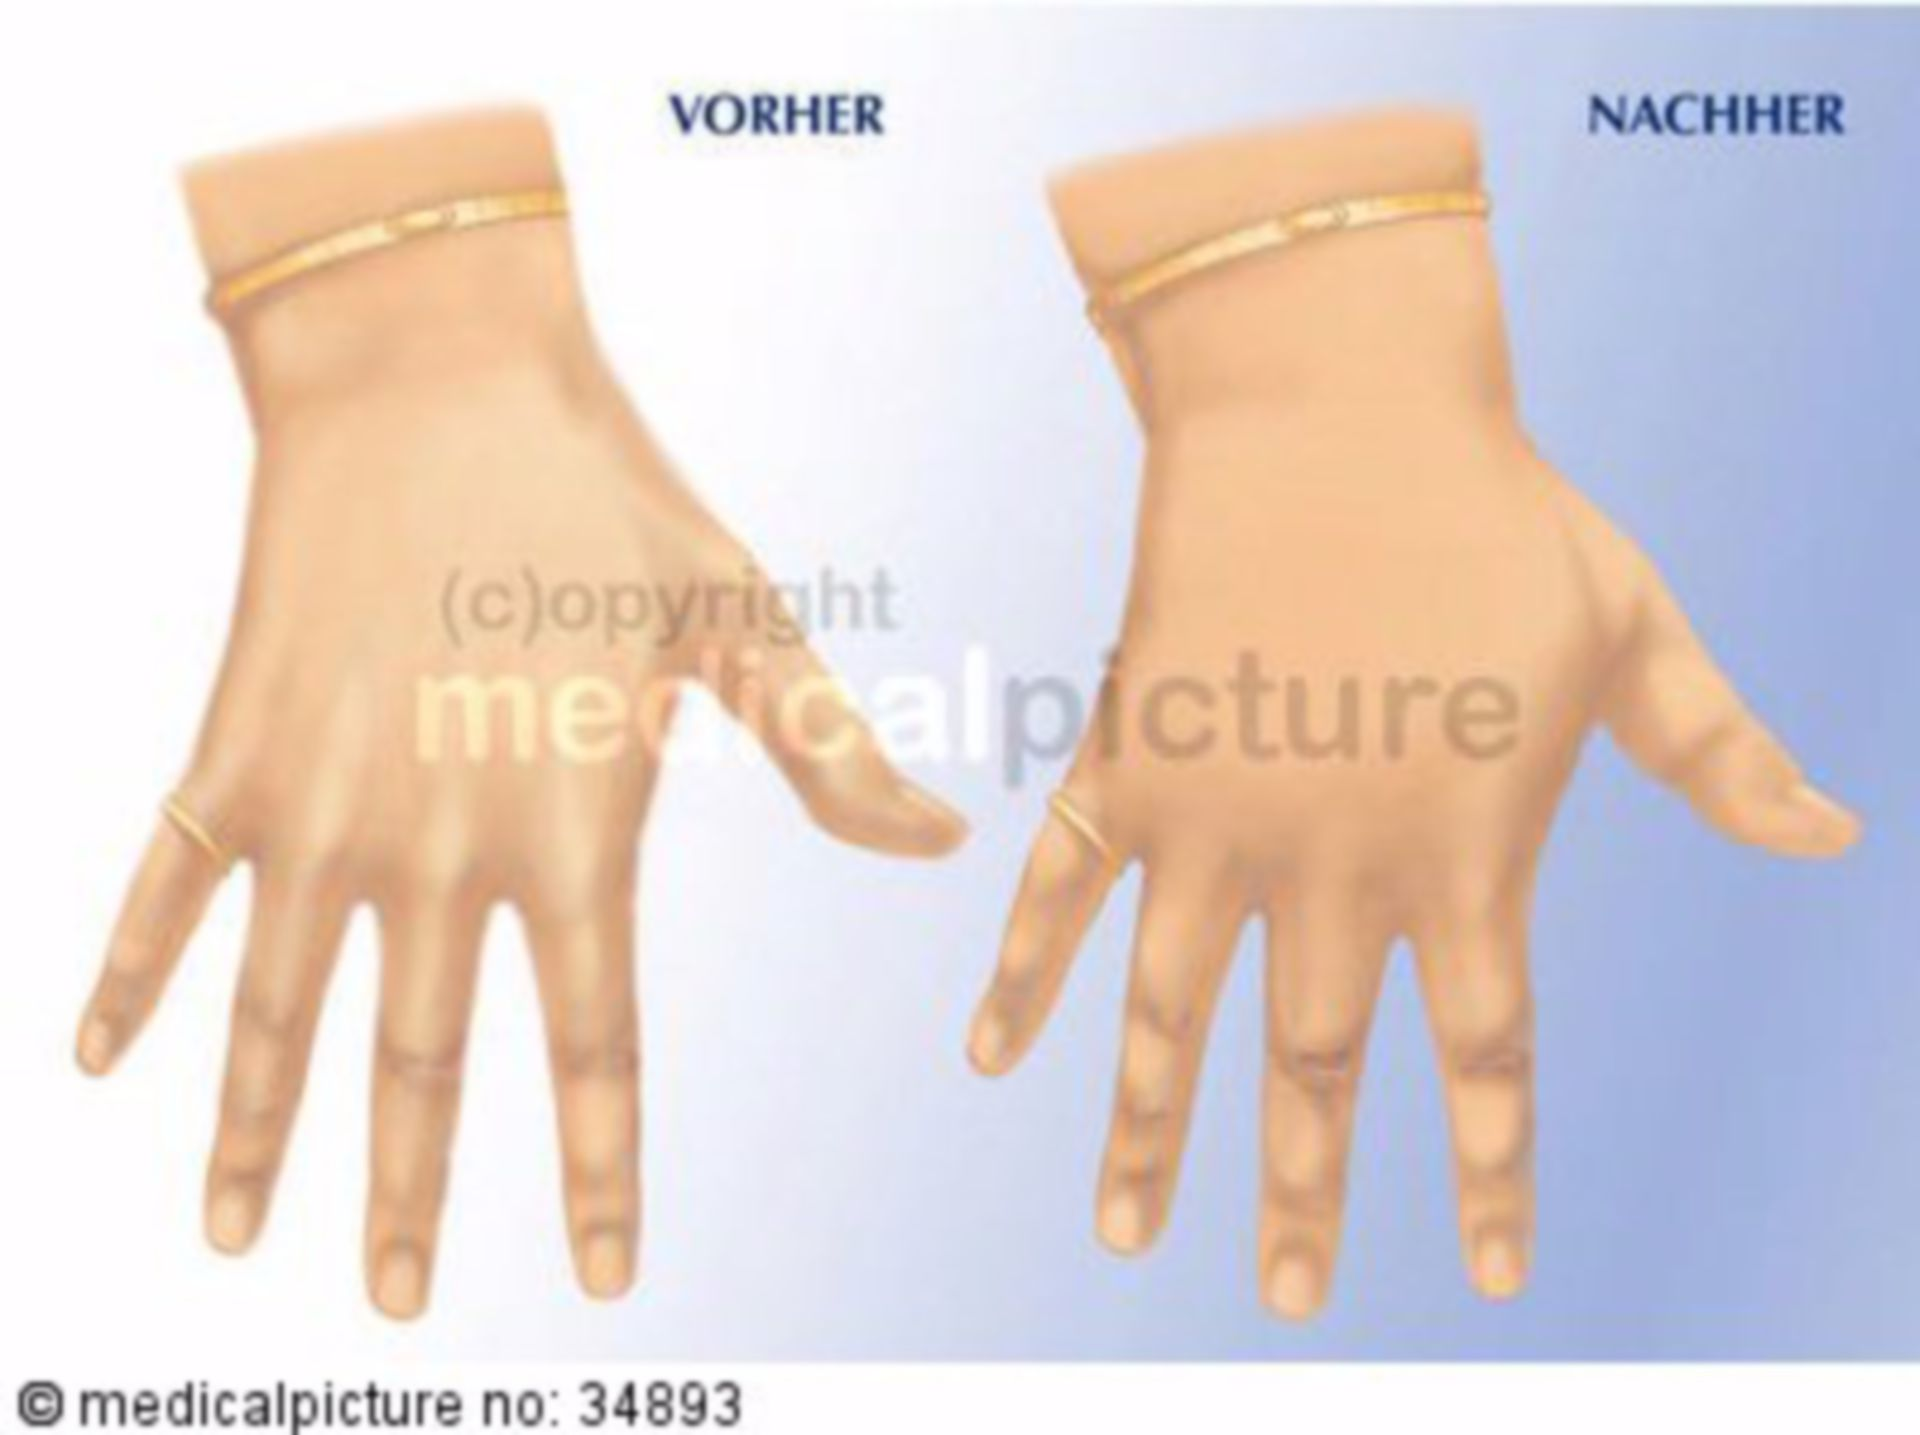 Edema of the Hand